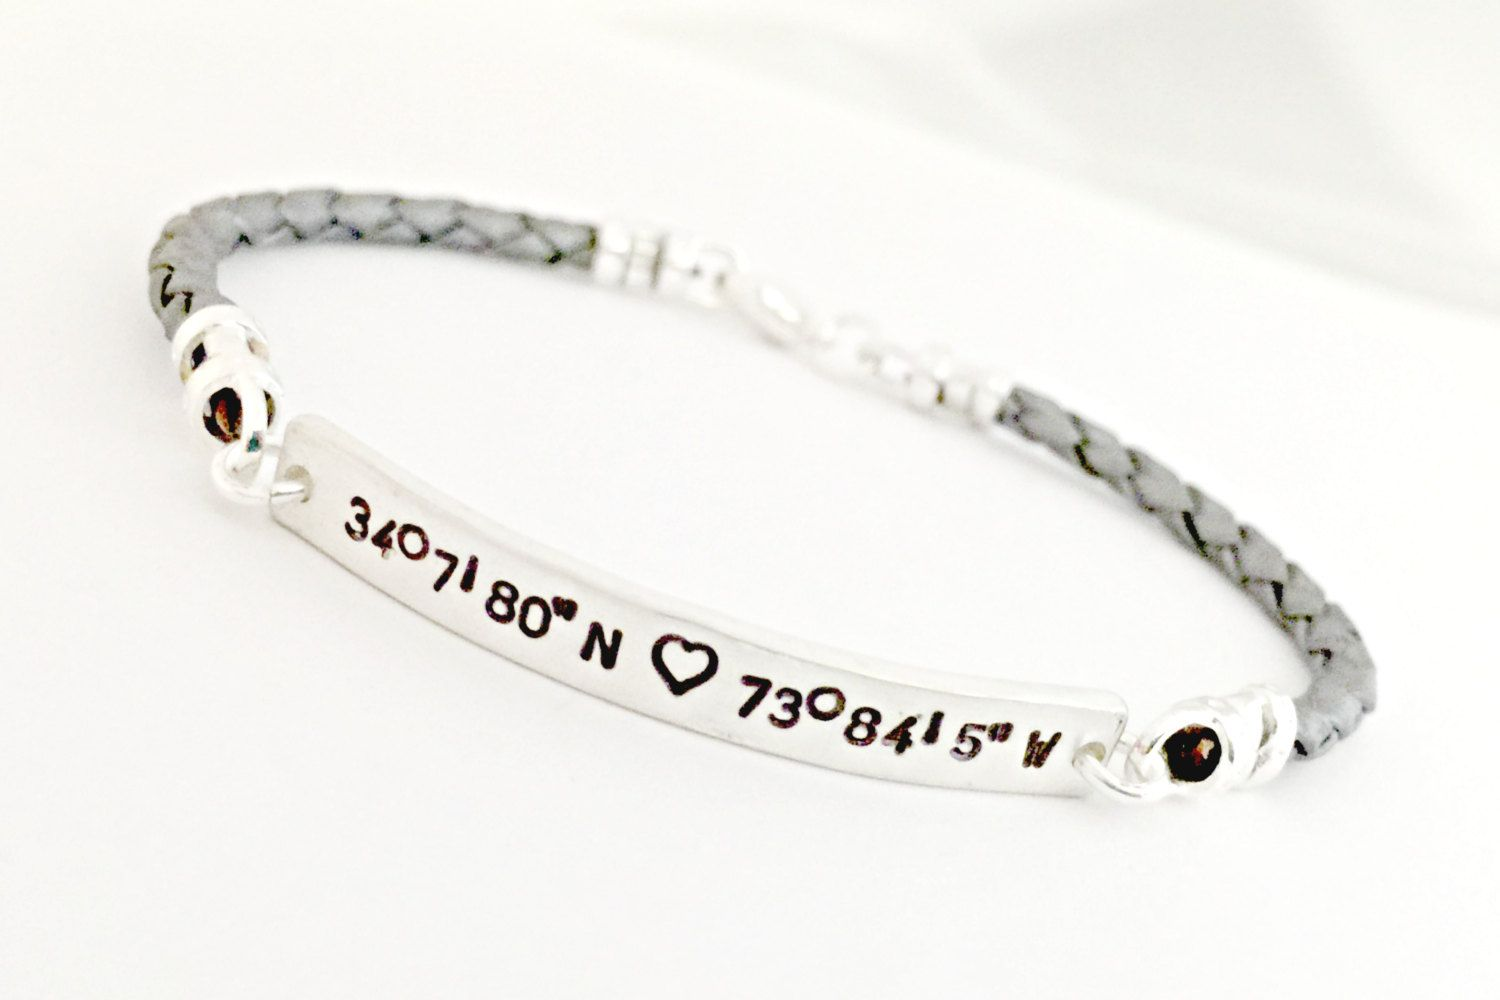 d64e4108217c0 Coordinates Bracelet - Hand Stamped Custom Braided Leather Sterling ...